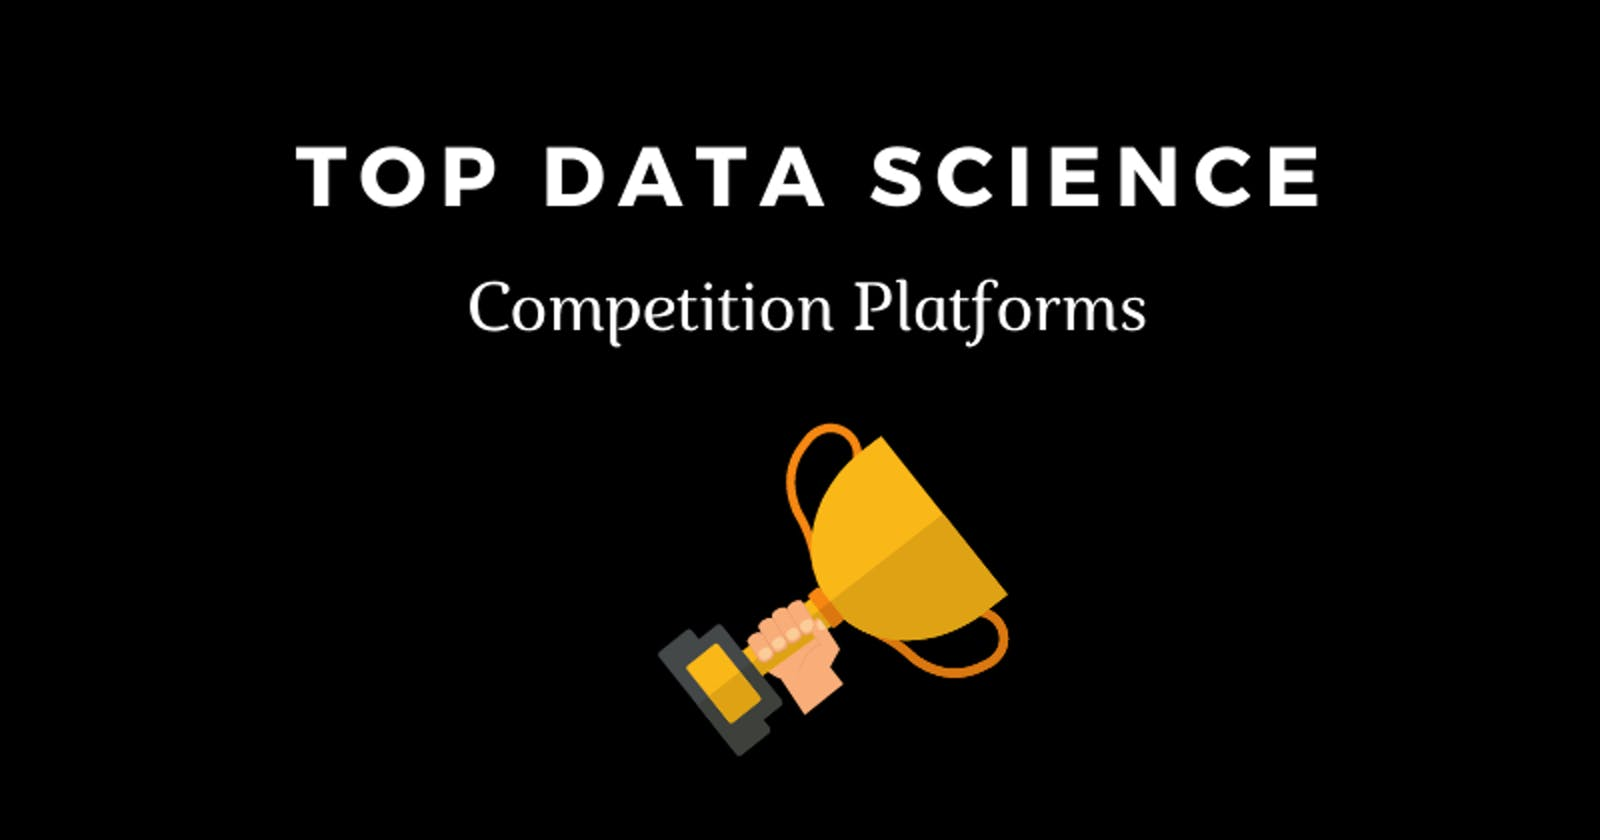 Top Data Science competition platforms